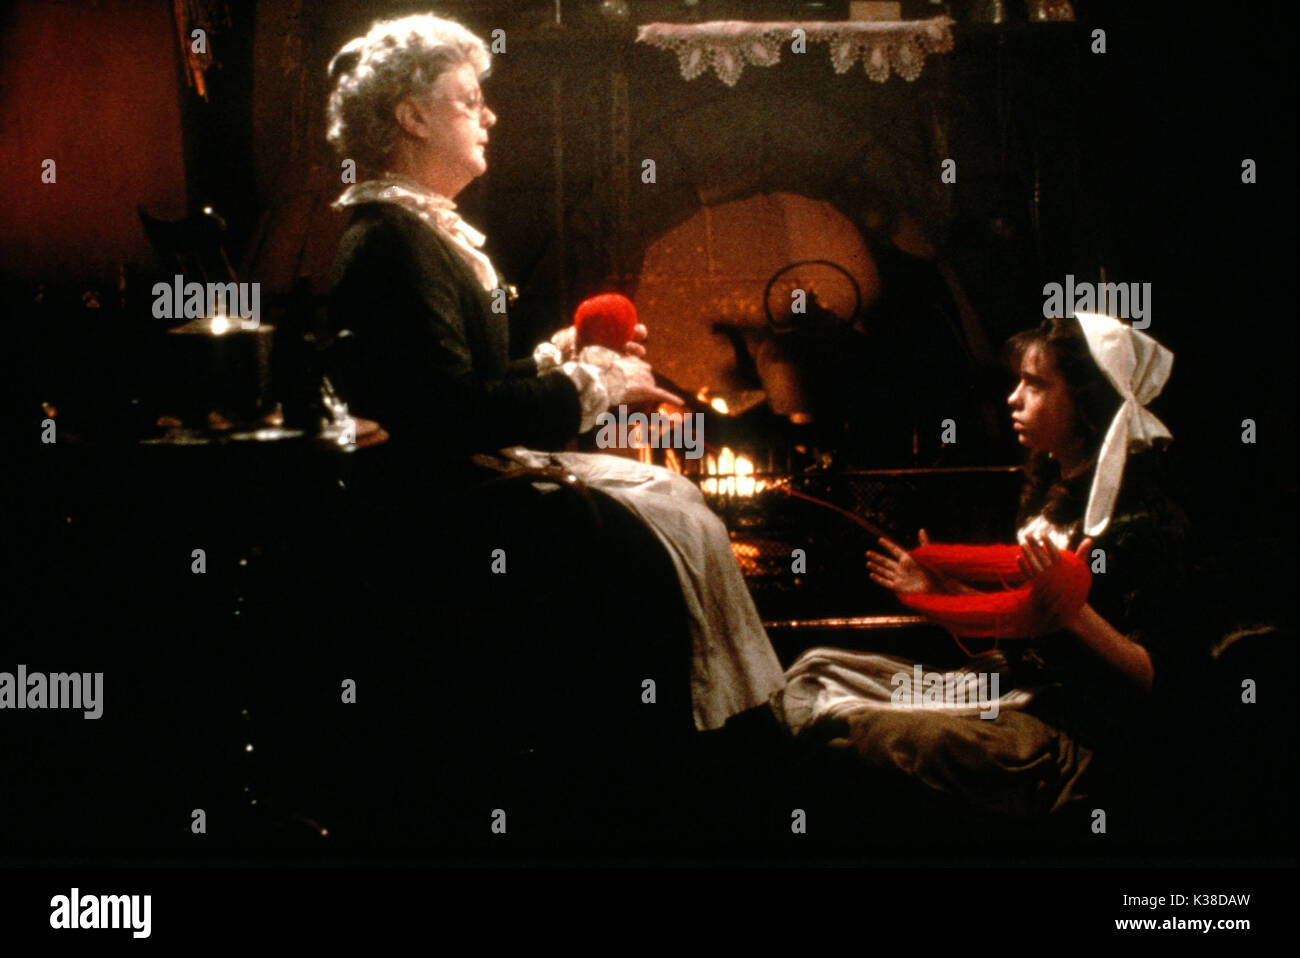 THE COMPANY OF WOLVES ANGELA LANSBURY AND SARAH PATTERSON DIRECTOR: NEIL JORDAN WRITERS: NEIL JORDAN AND ANGELA CARTER CANNON FILMS PICTURE FROM THE RONALD GRANT ARCHIVE THE COMPANY OF WOLVES     Date: 1984 - Stock Image